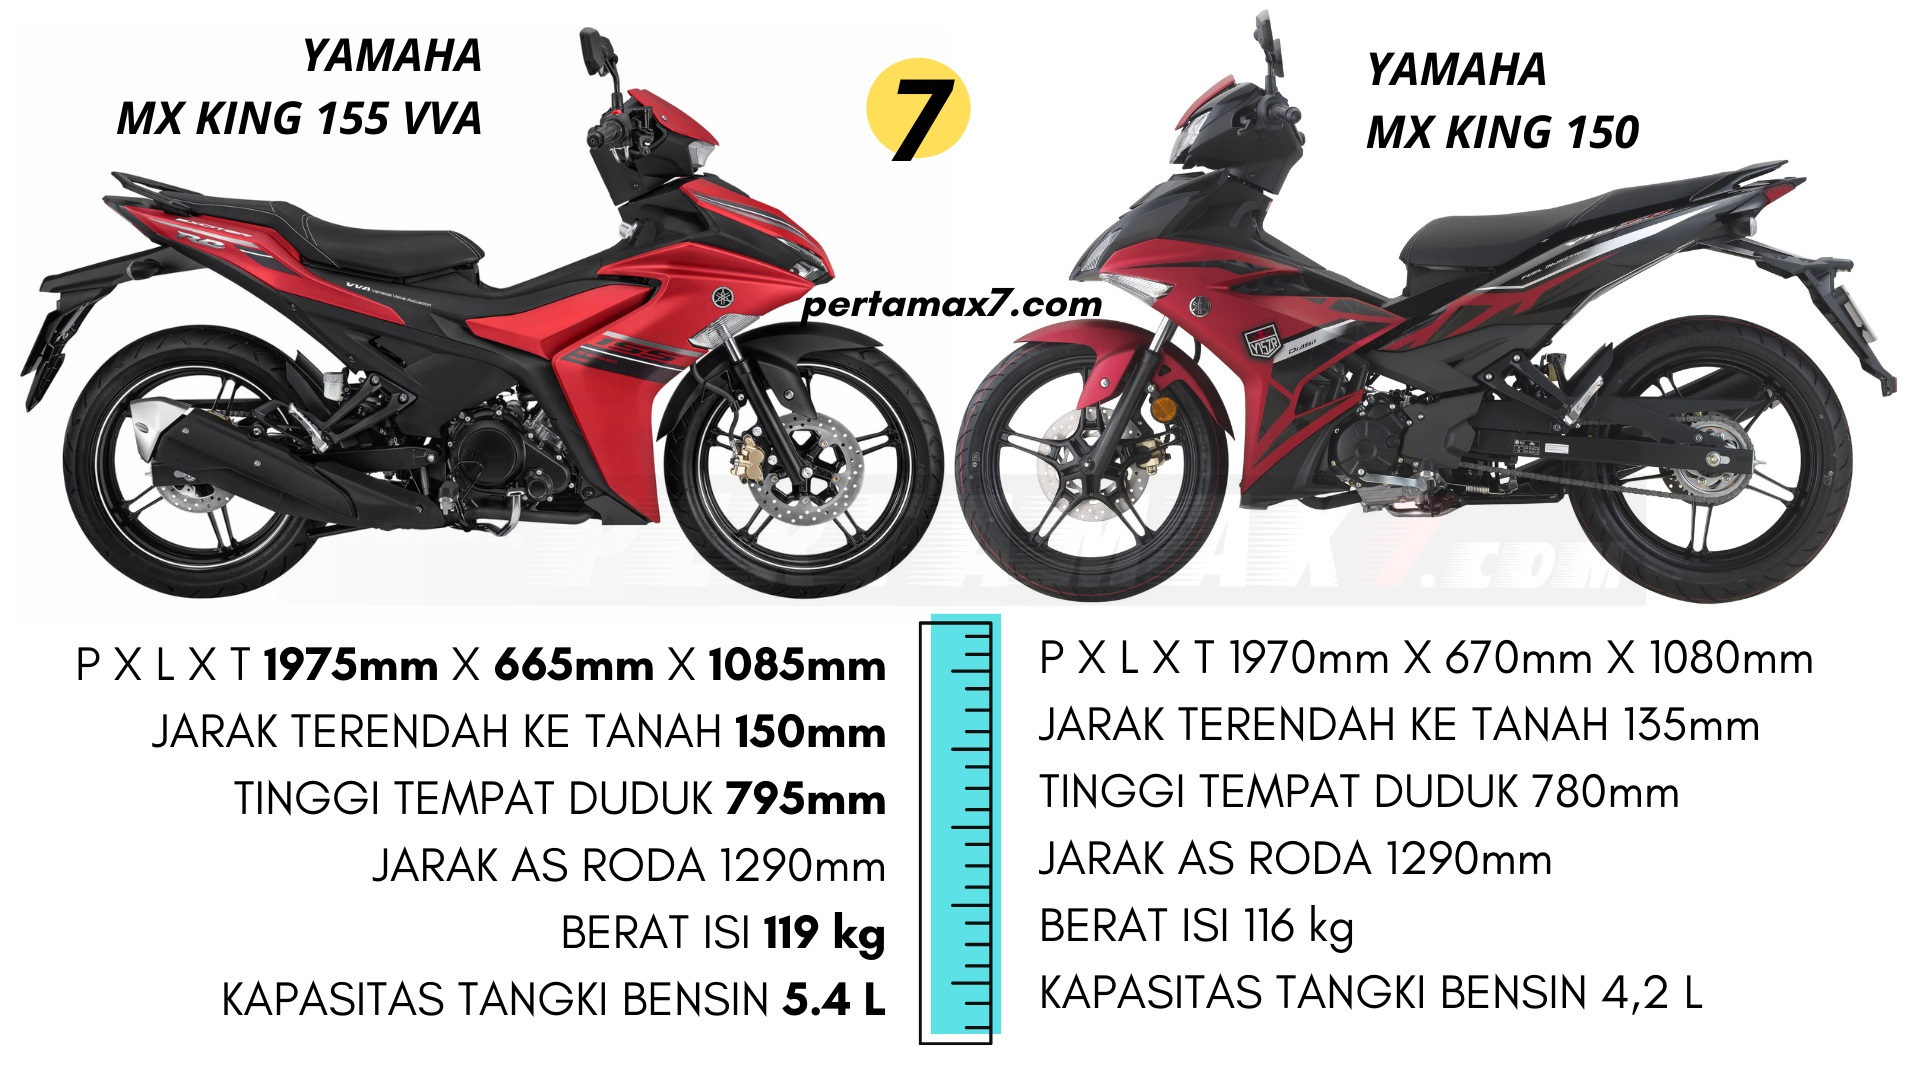 Komparasi Yamaha MX KING 155 VVA VS MX KING 150 Dimensi